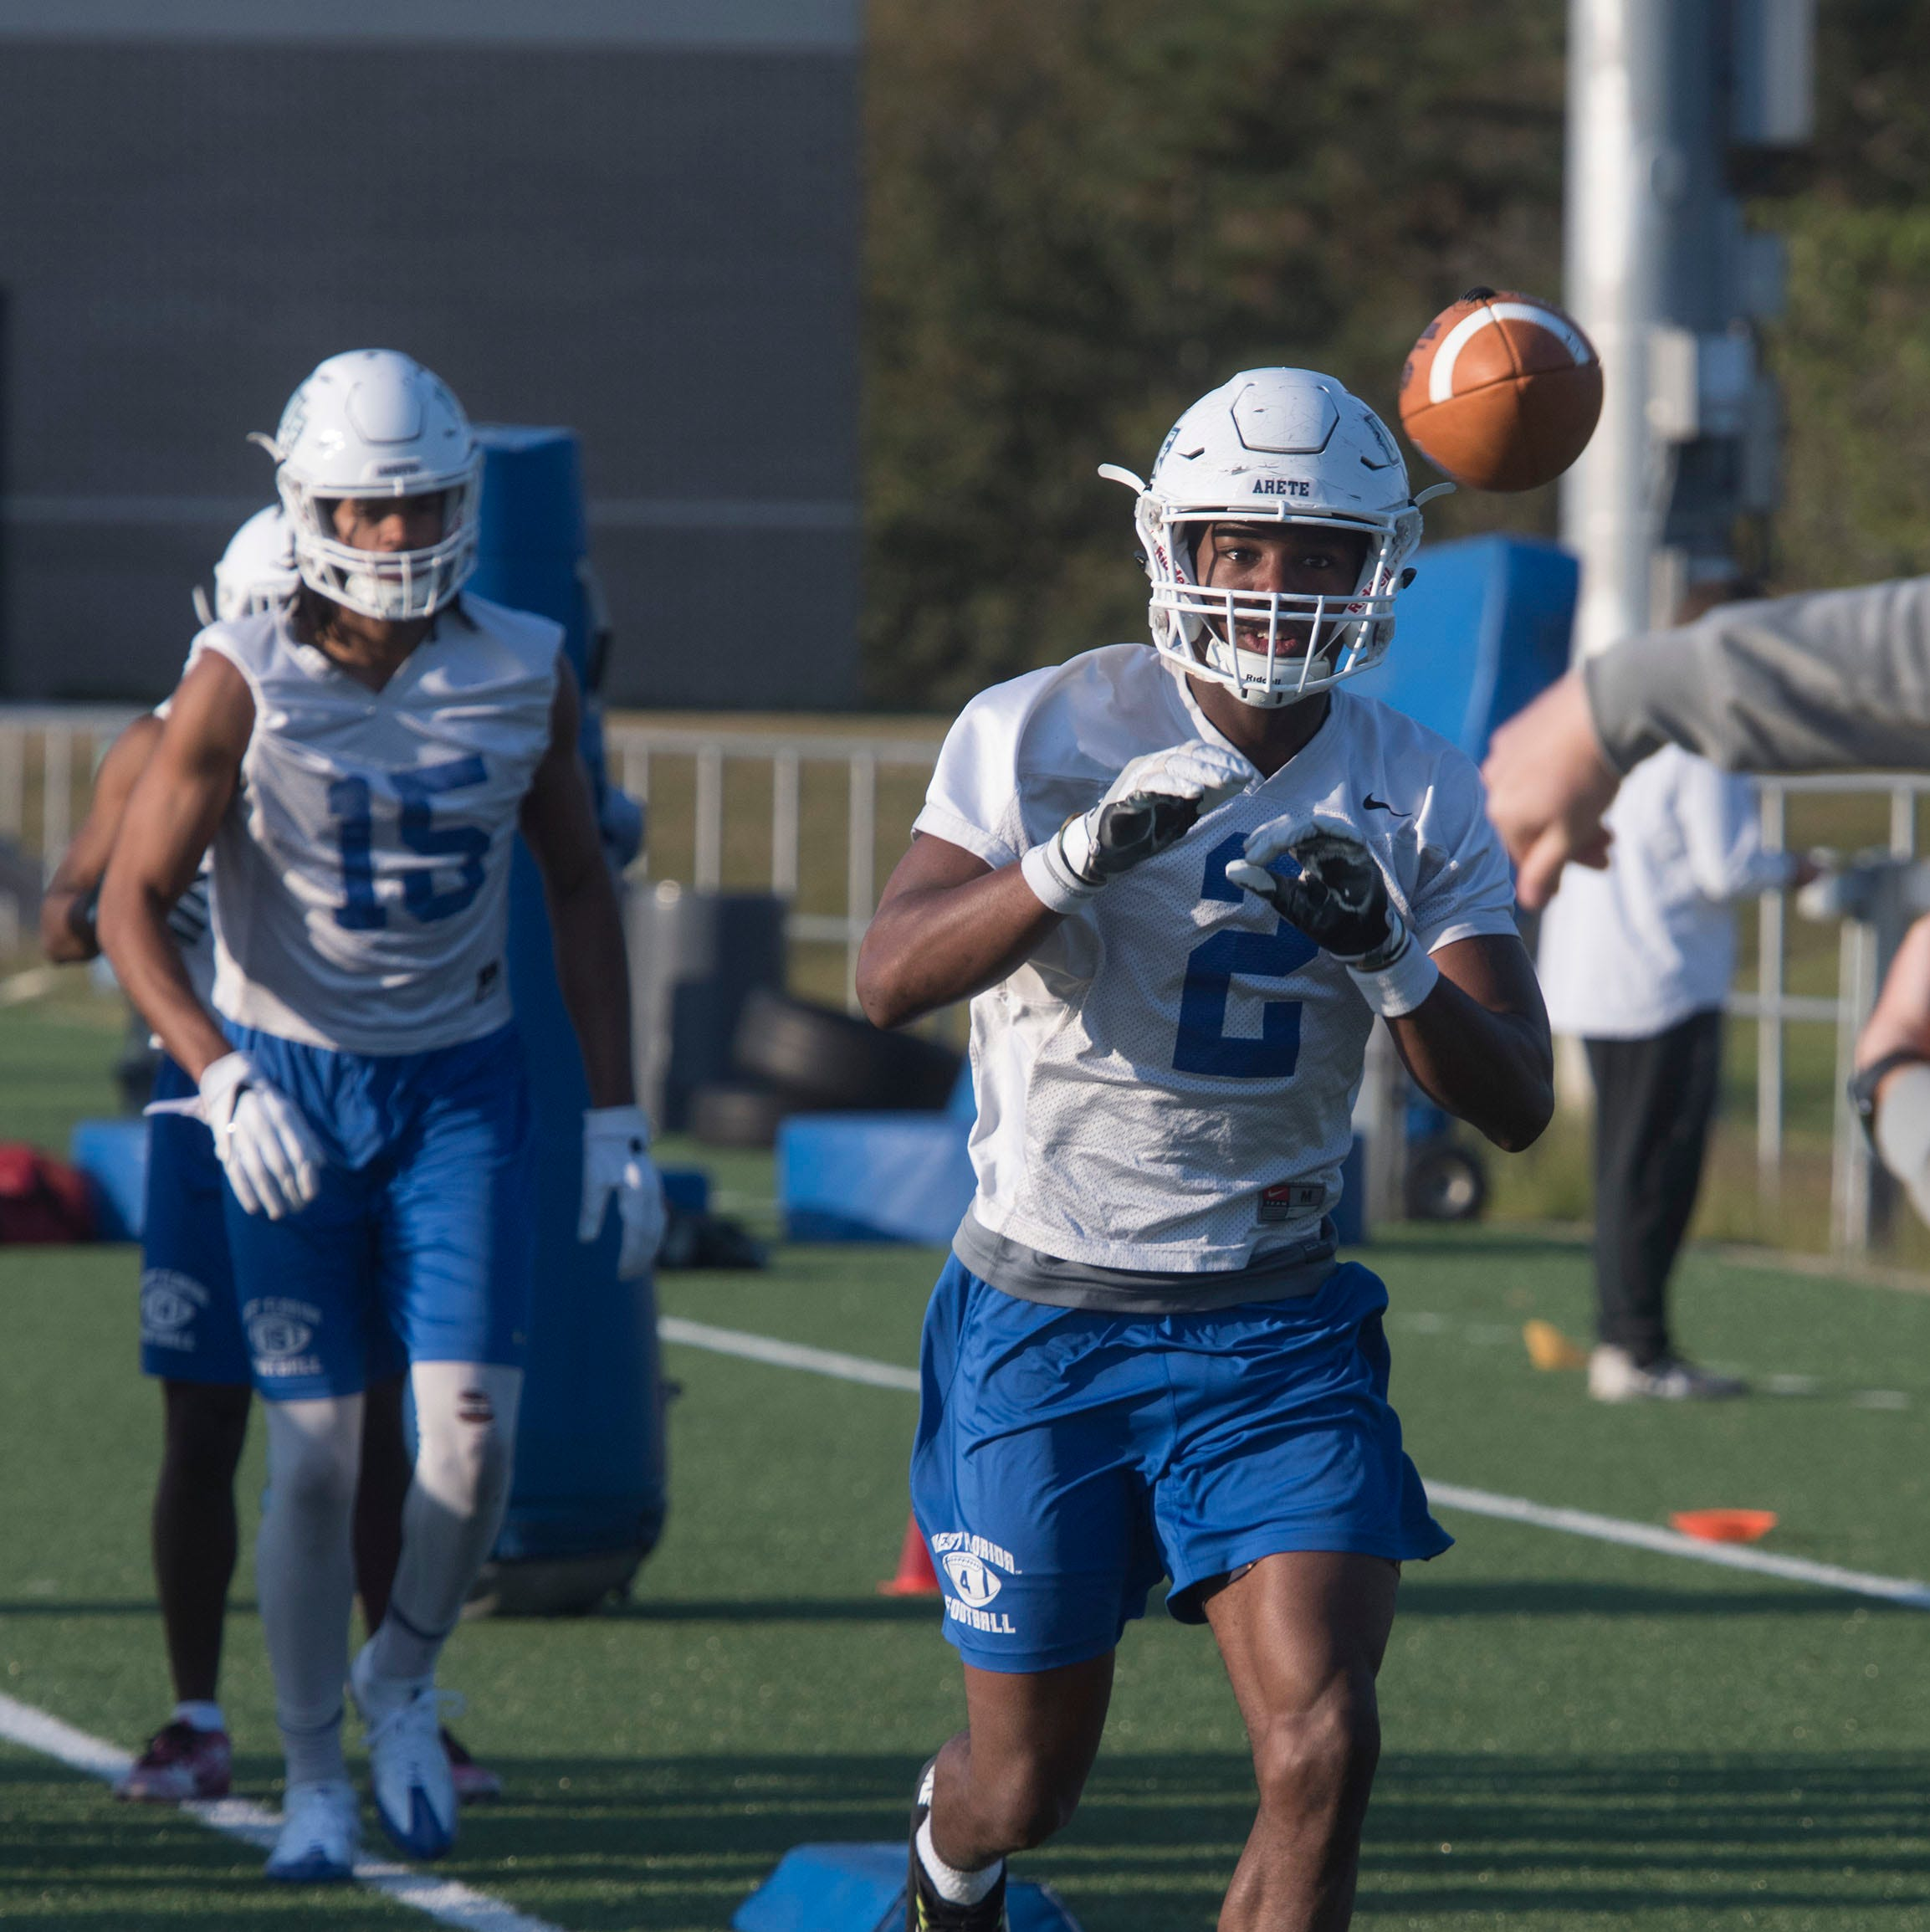 UWF football spring practice: Who's gone, who's new and who's back